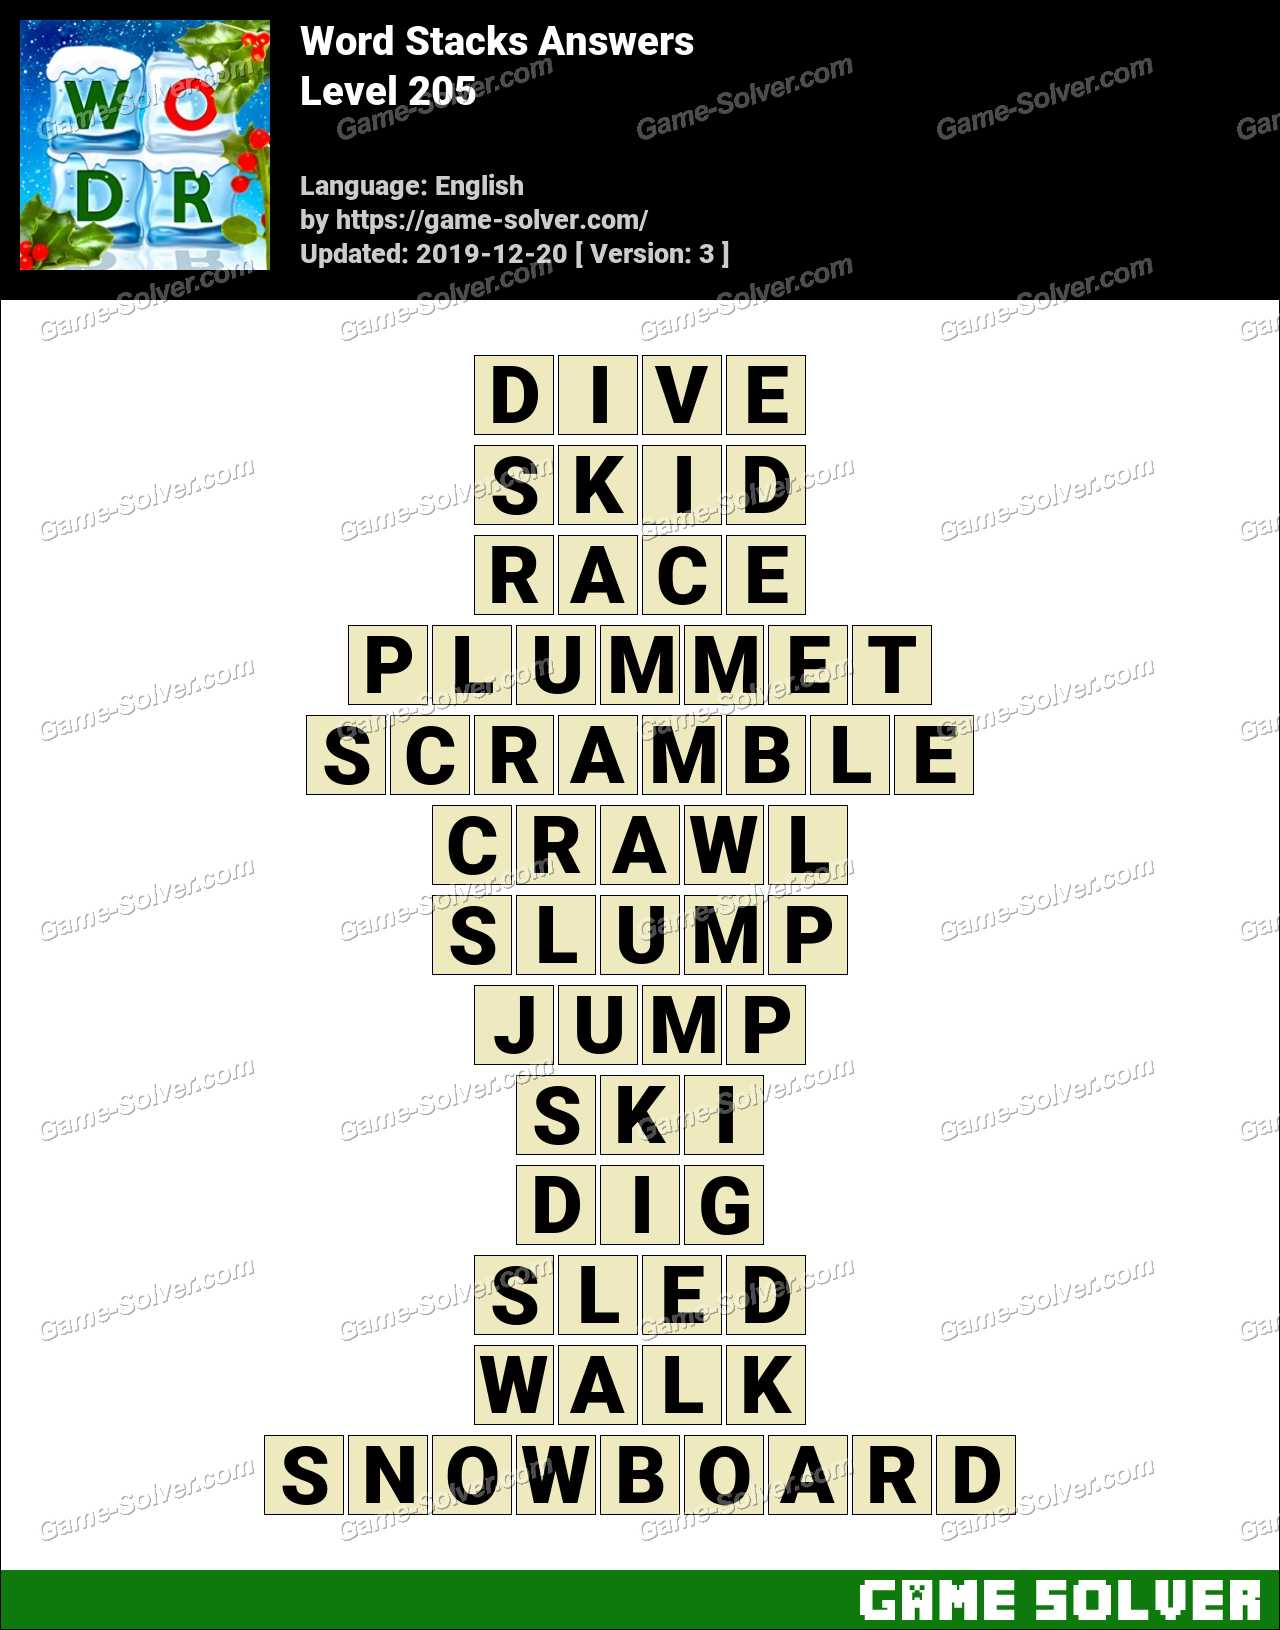 Word Stacks Level 205 Answers